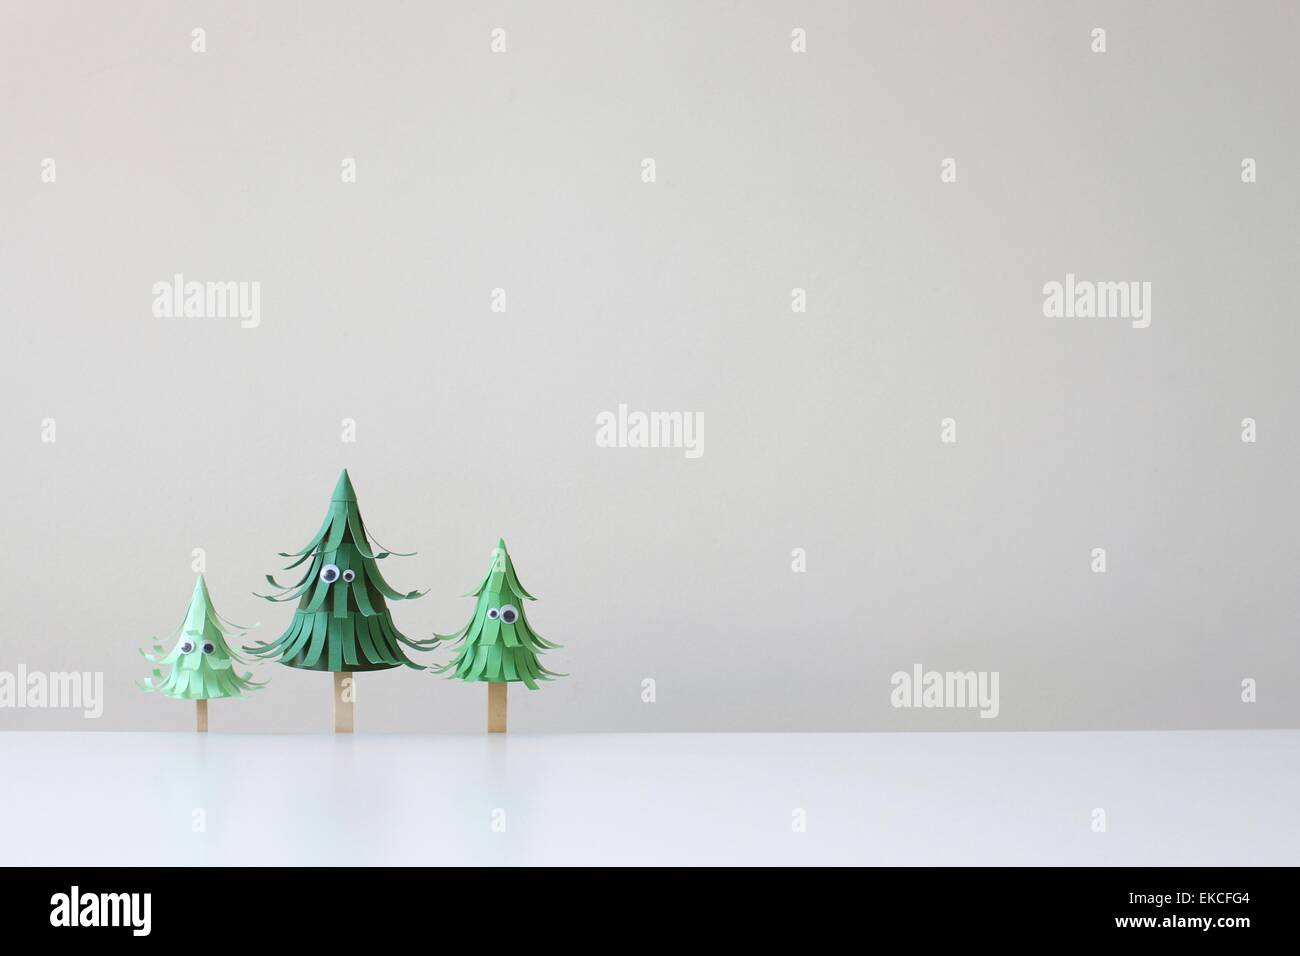 Conceptual trees with googly eyes - Stock Image